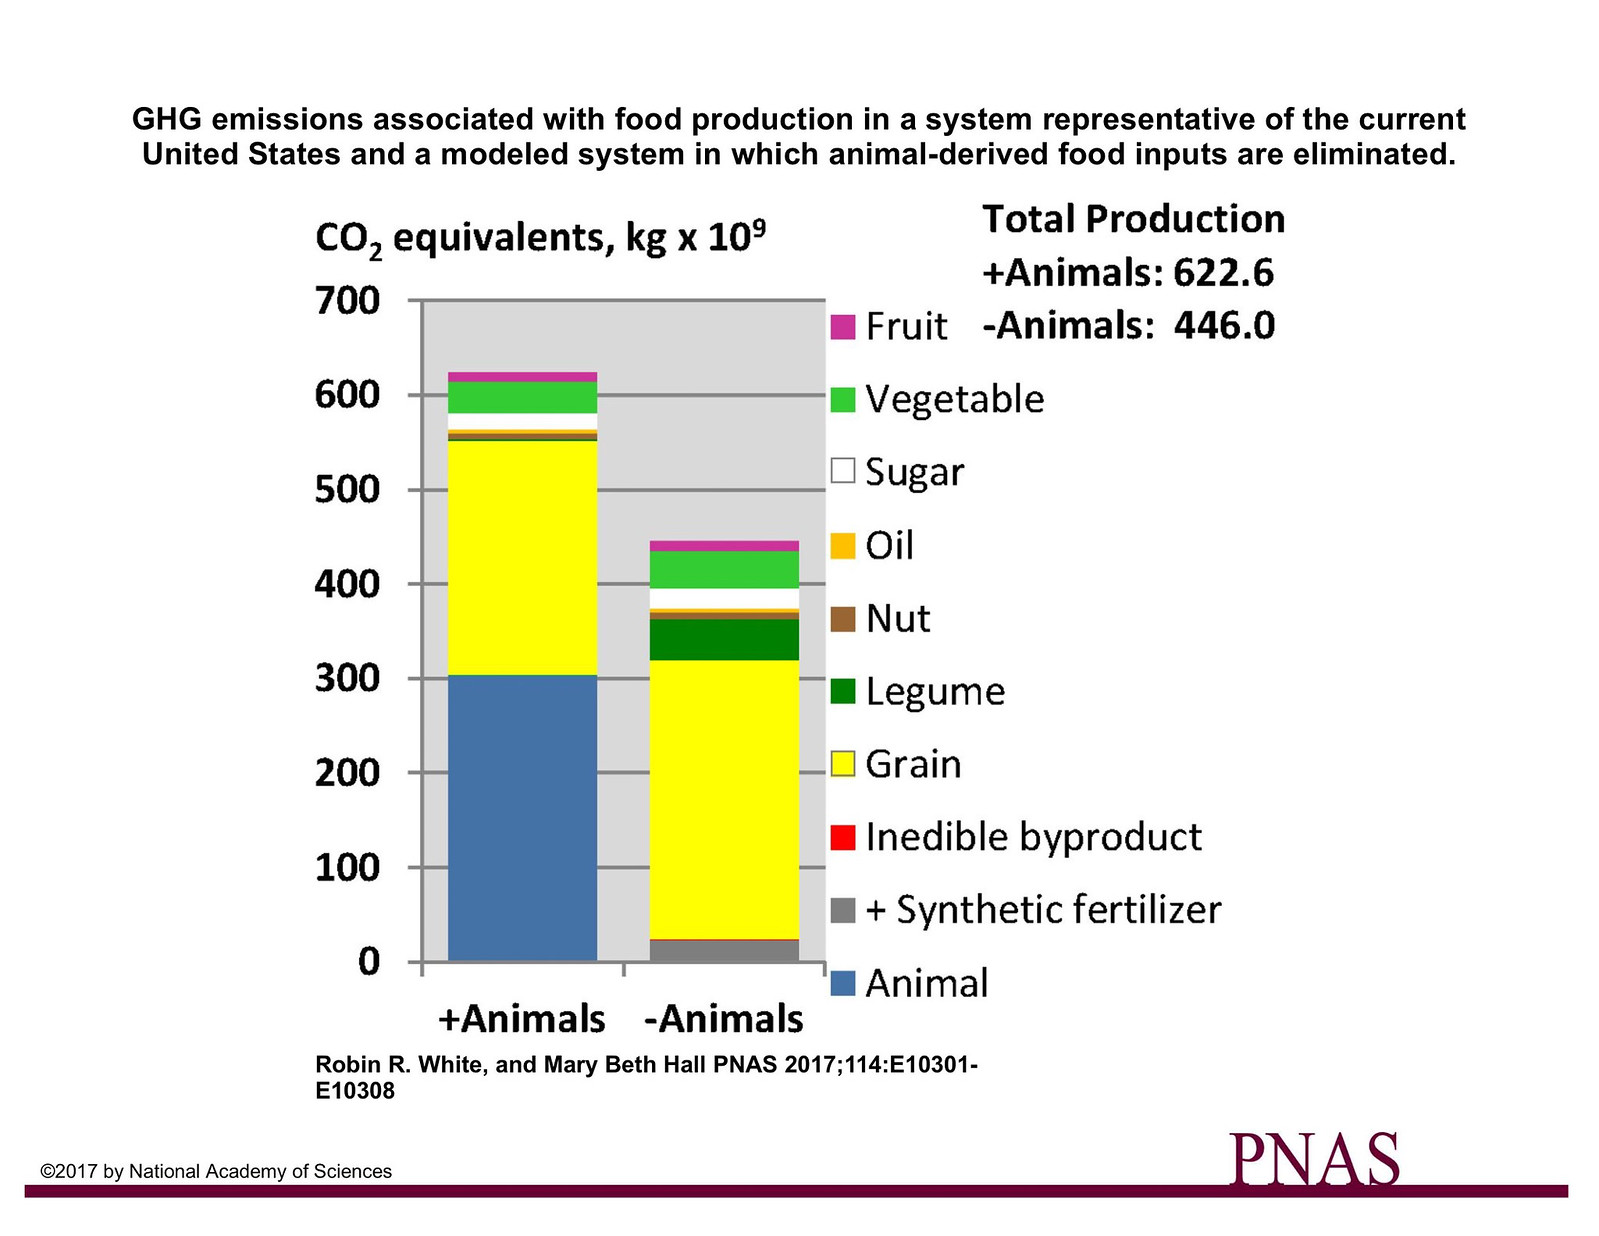 GHG emissions associated with food production with animals eliminated in the US 225